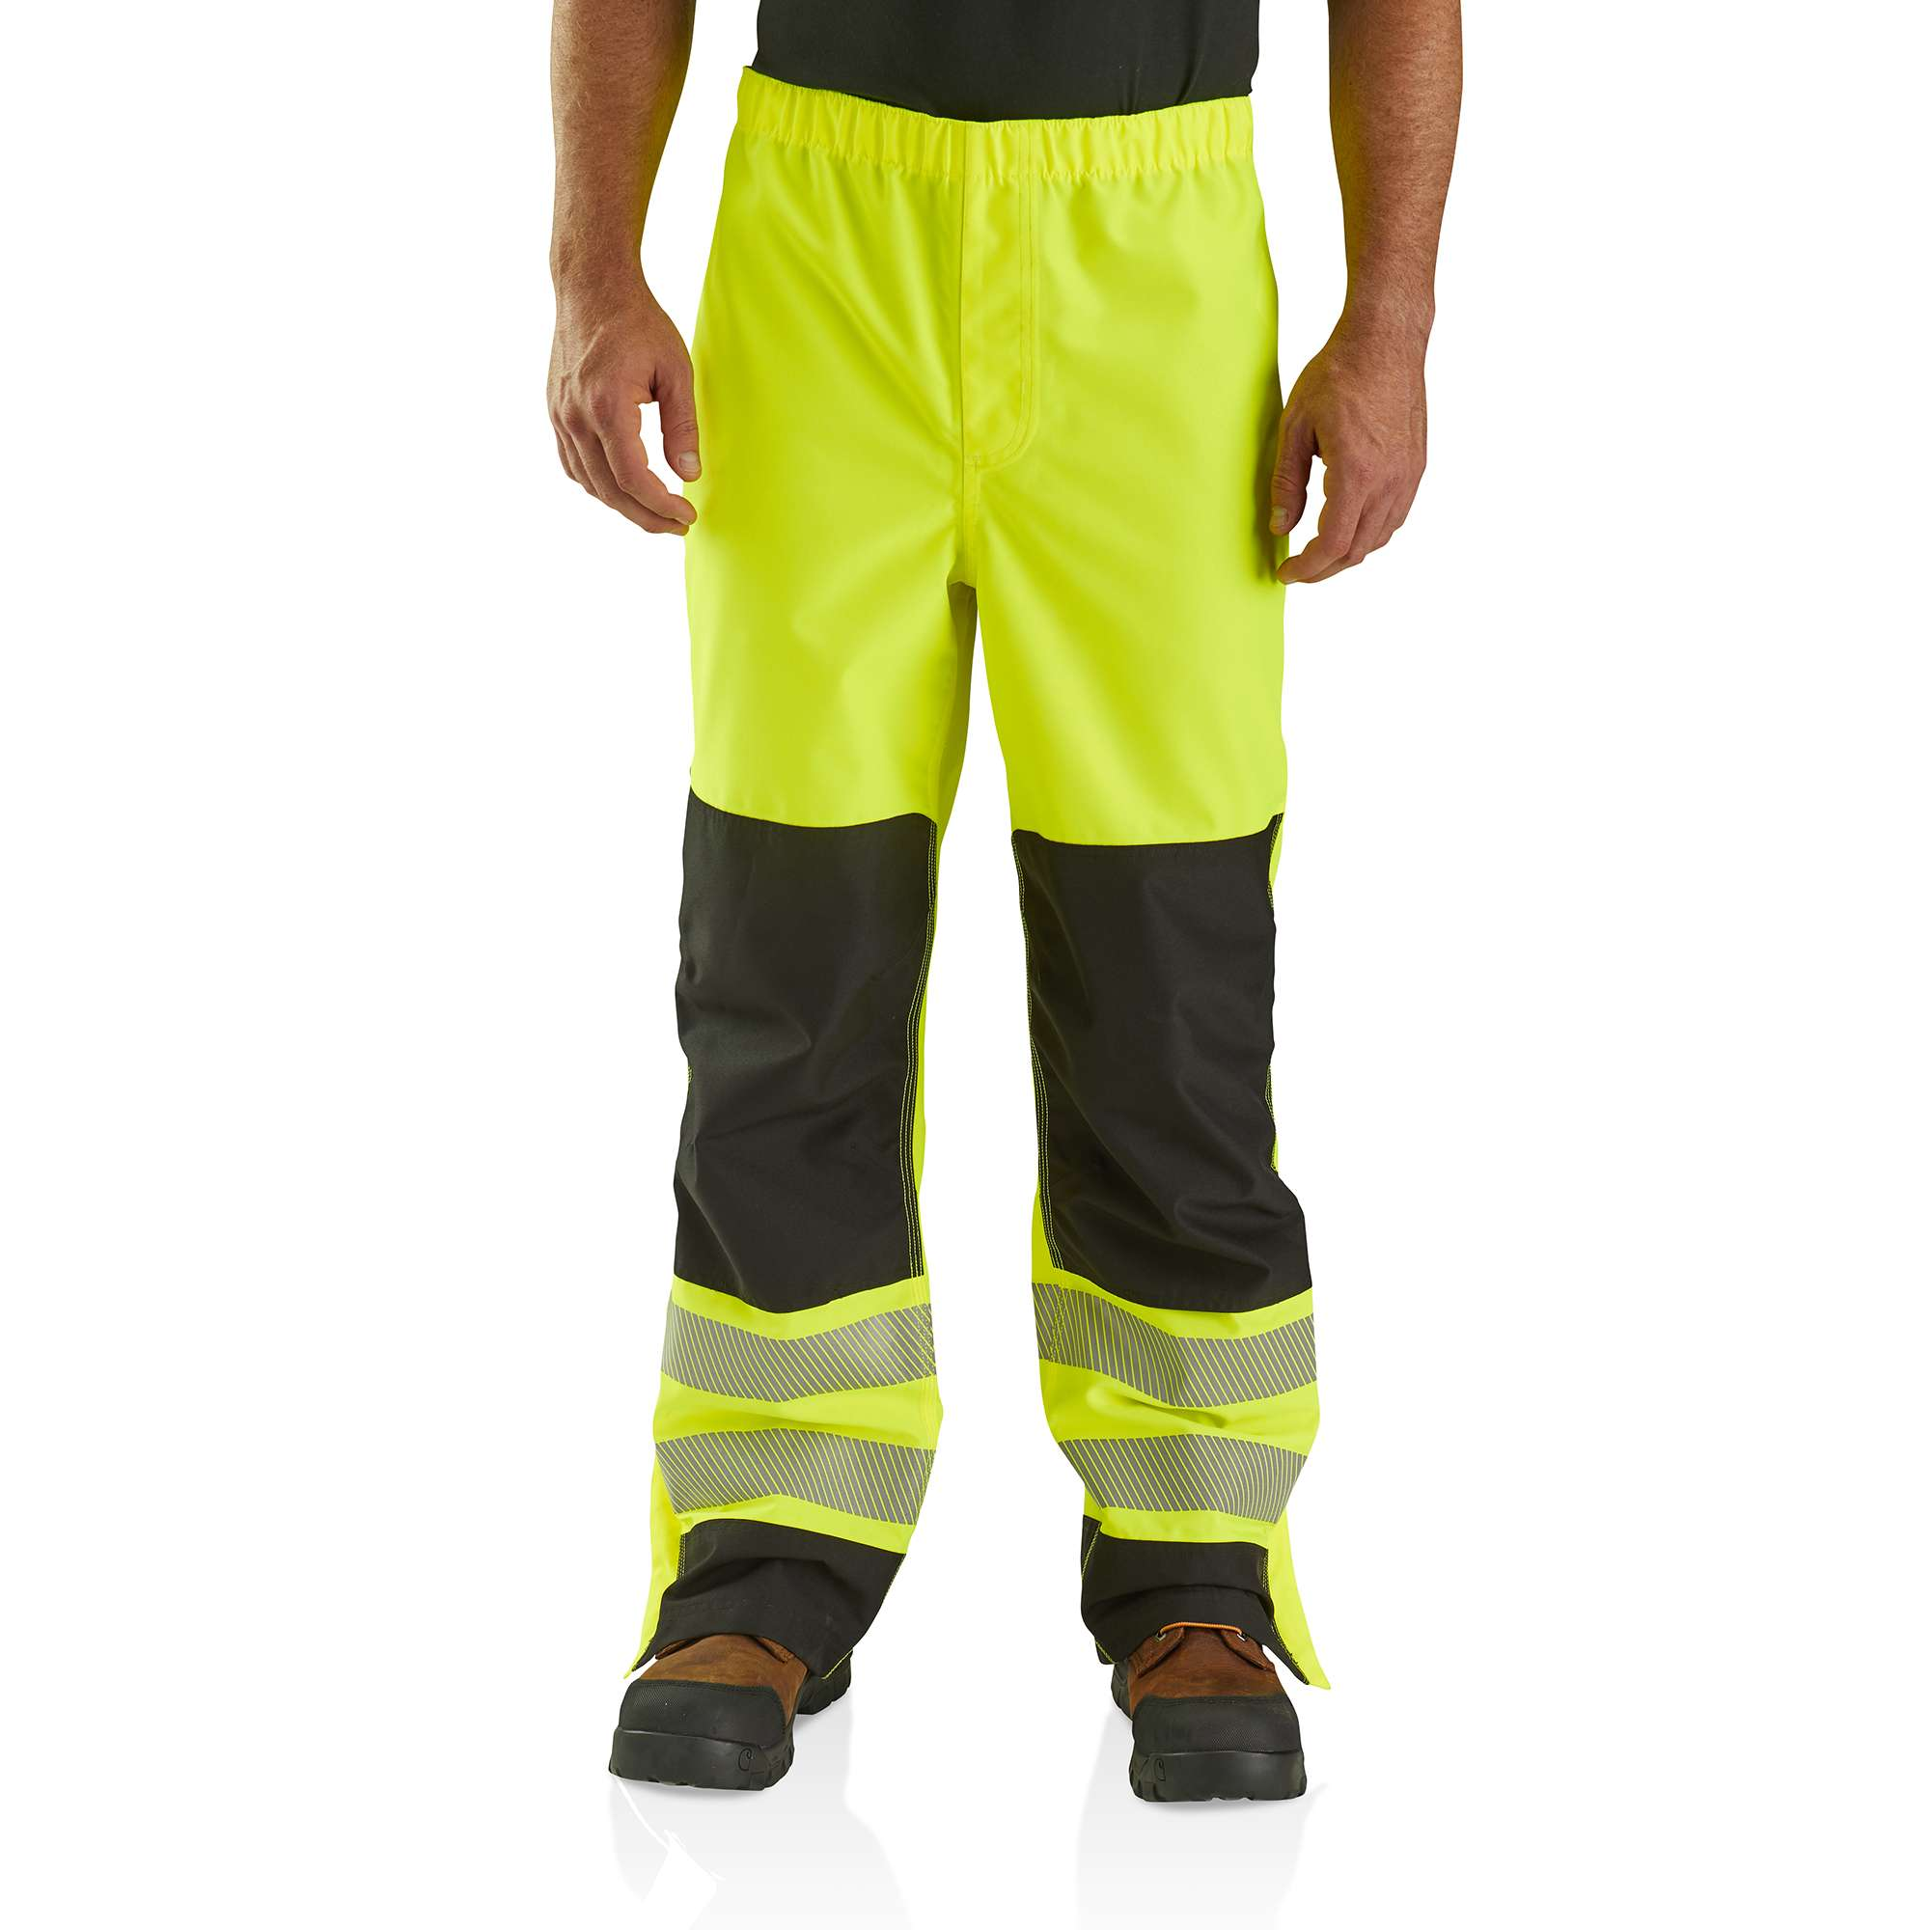 Carhartt High-Visibility Class E Waterproof Pant